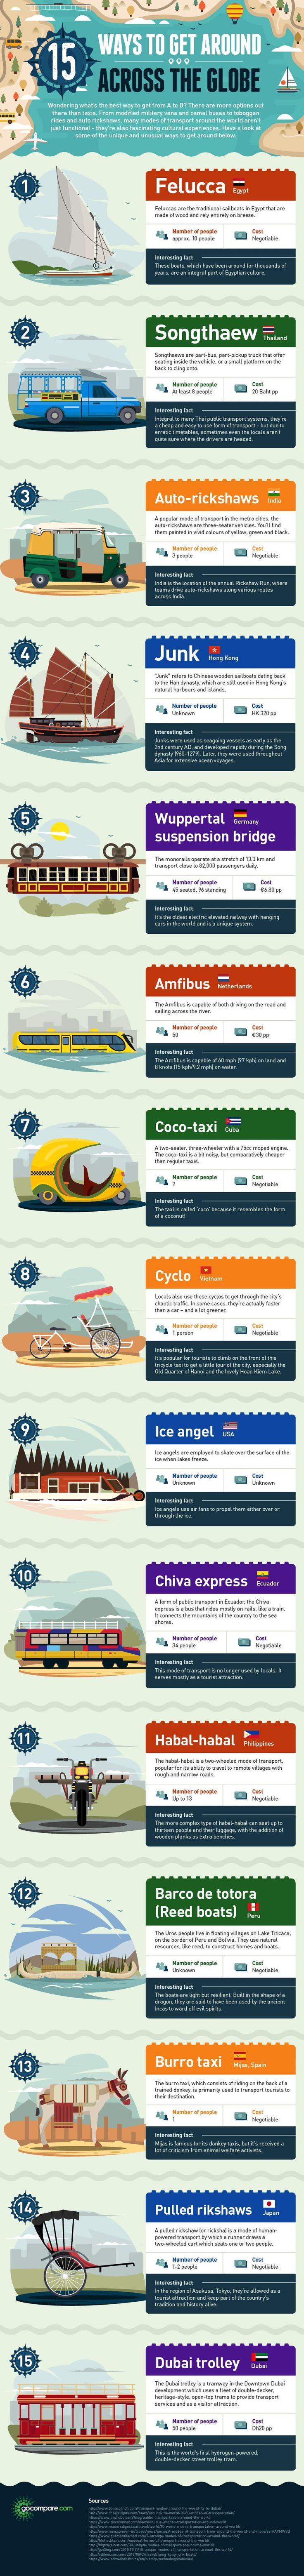 Modes of Public Transport Around the World #infographic http://bit.ly/2mvUxoF